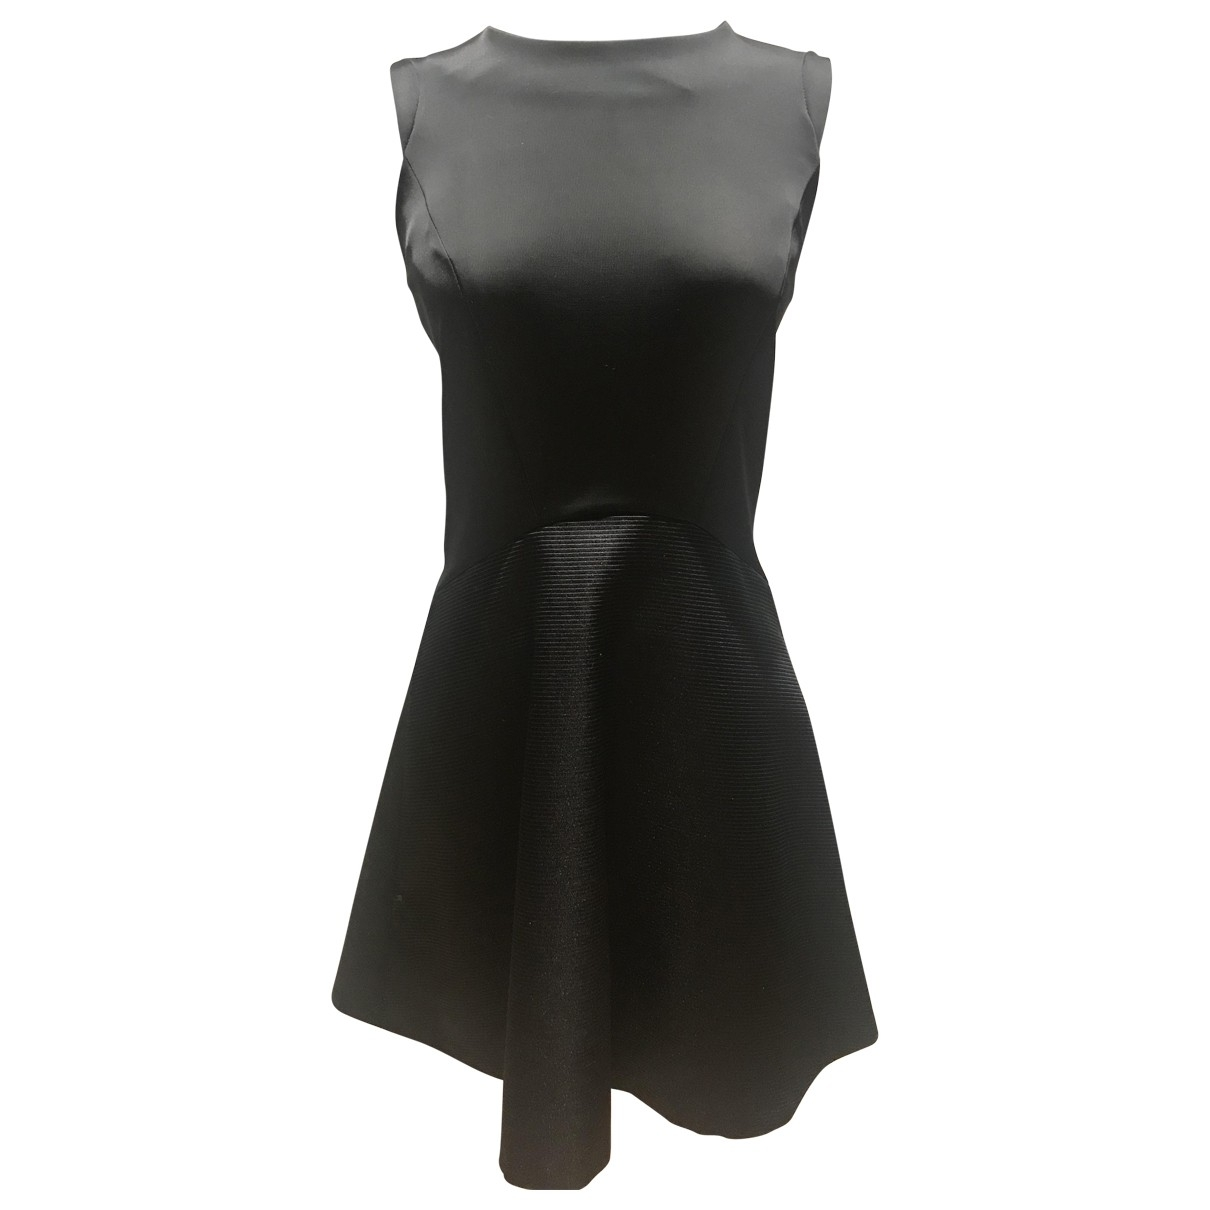 Sandro \N Black dress for Women 36 FR